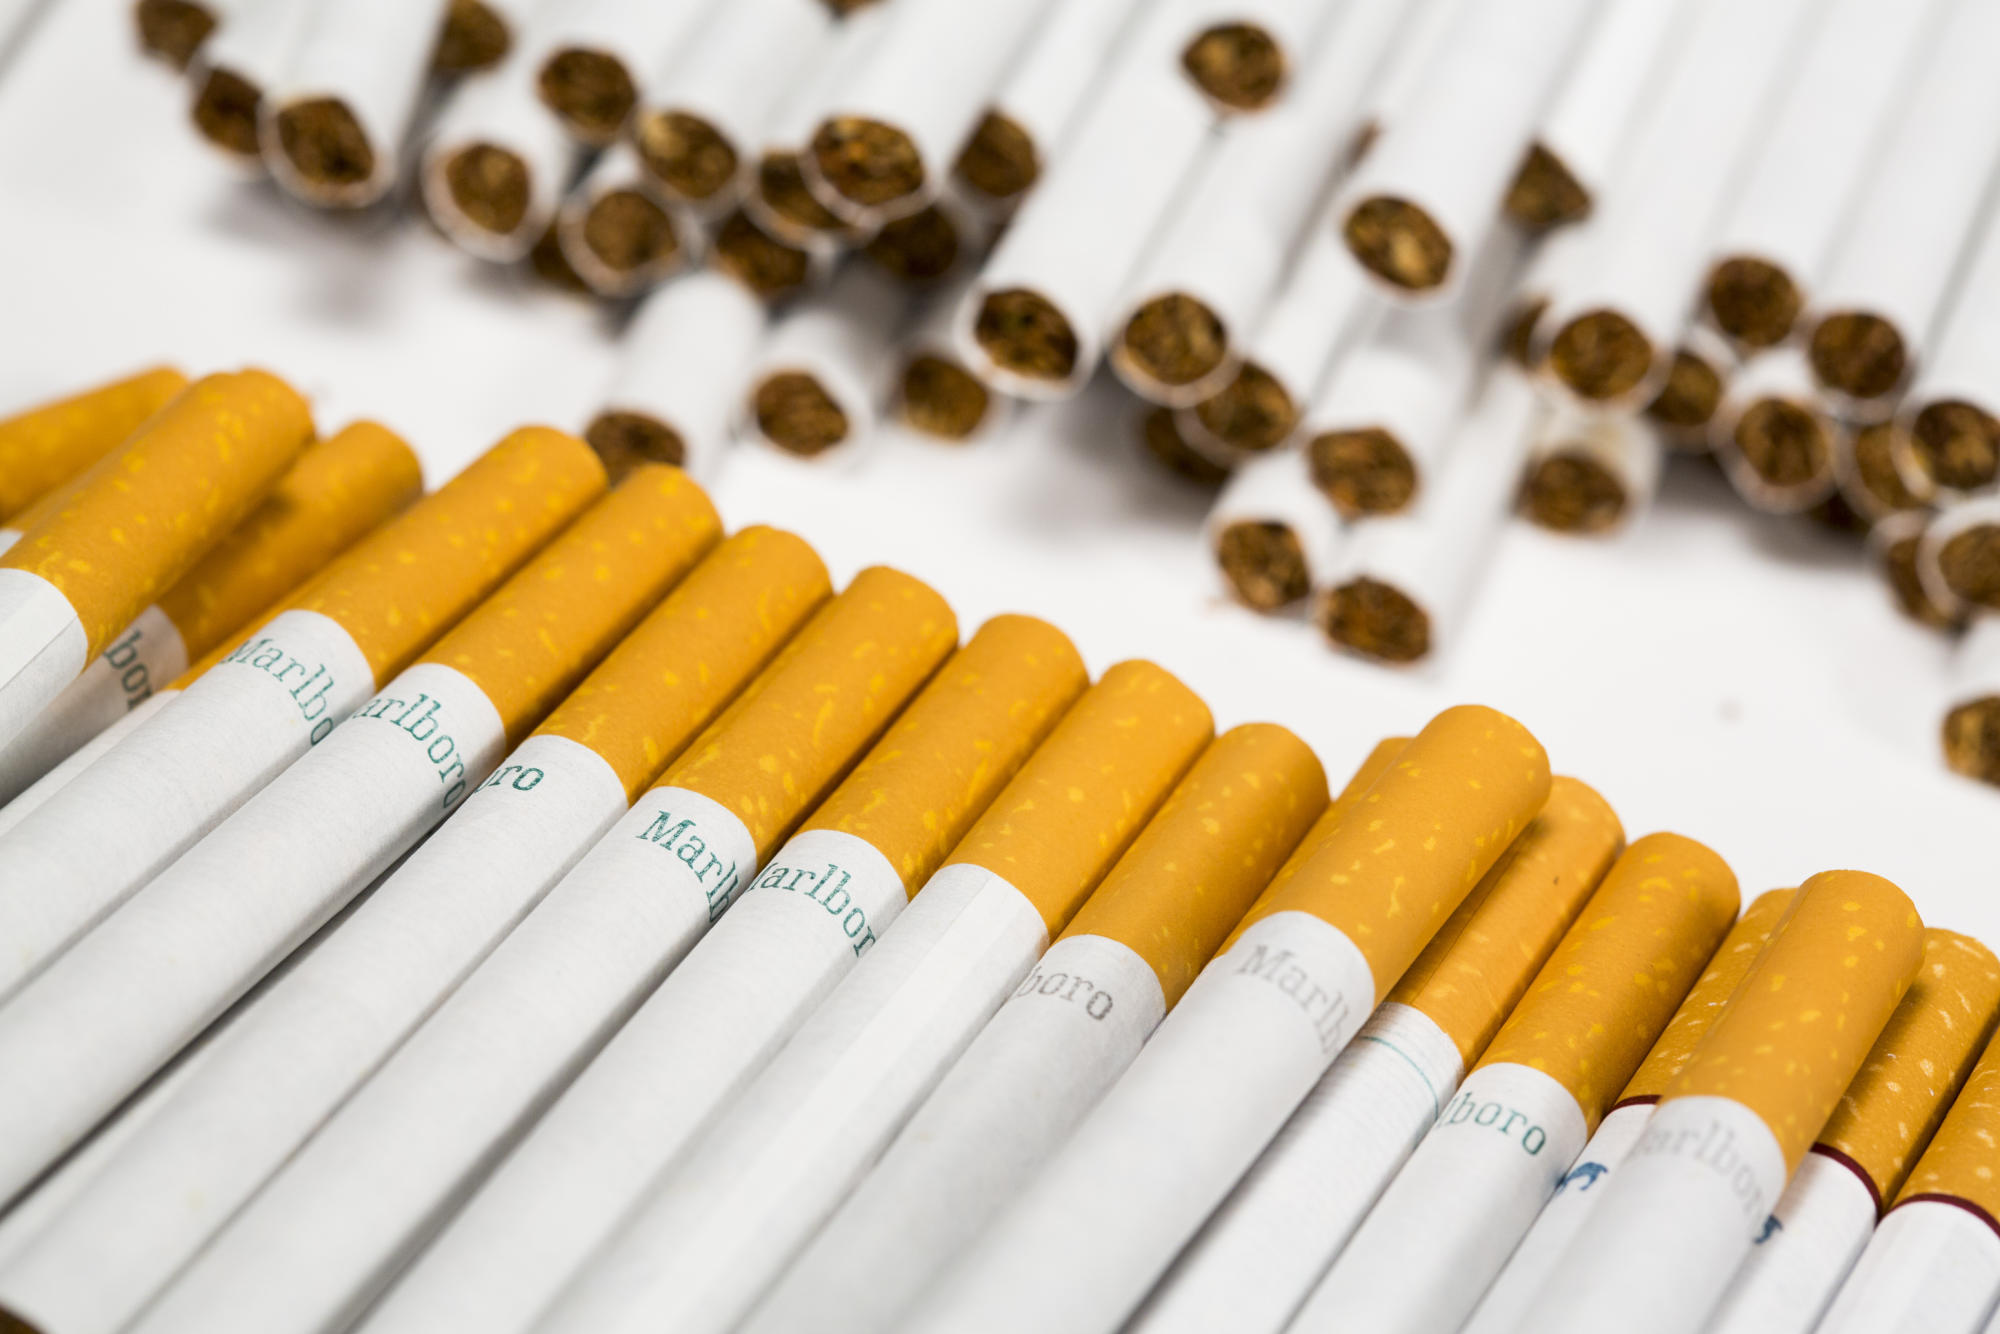 Tobacco giant behind Marlboro to end of cigarette sales in UK within next decade, boss reveals